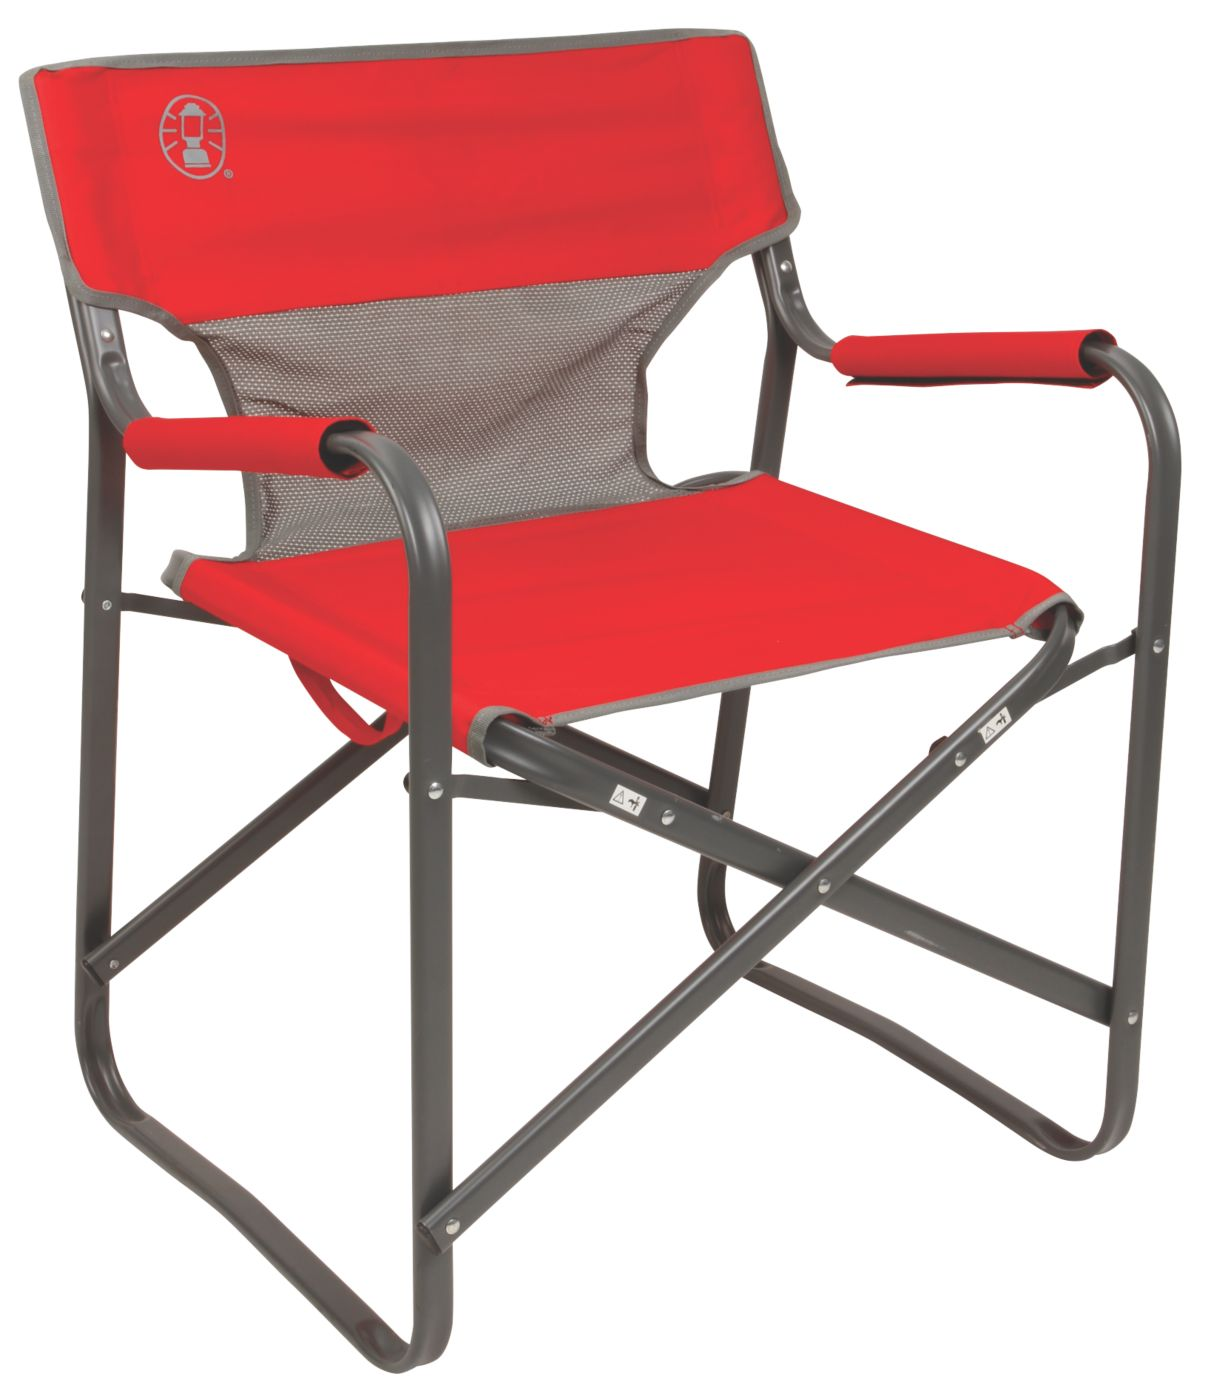 camp folding chairs chair sashes for rent camping coleman outpost breeze deck